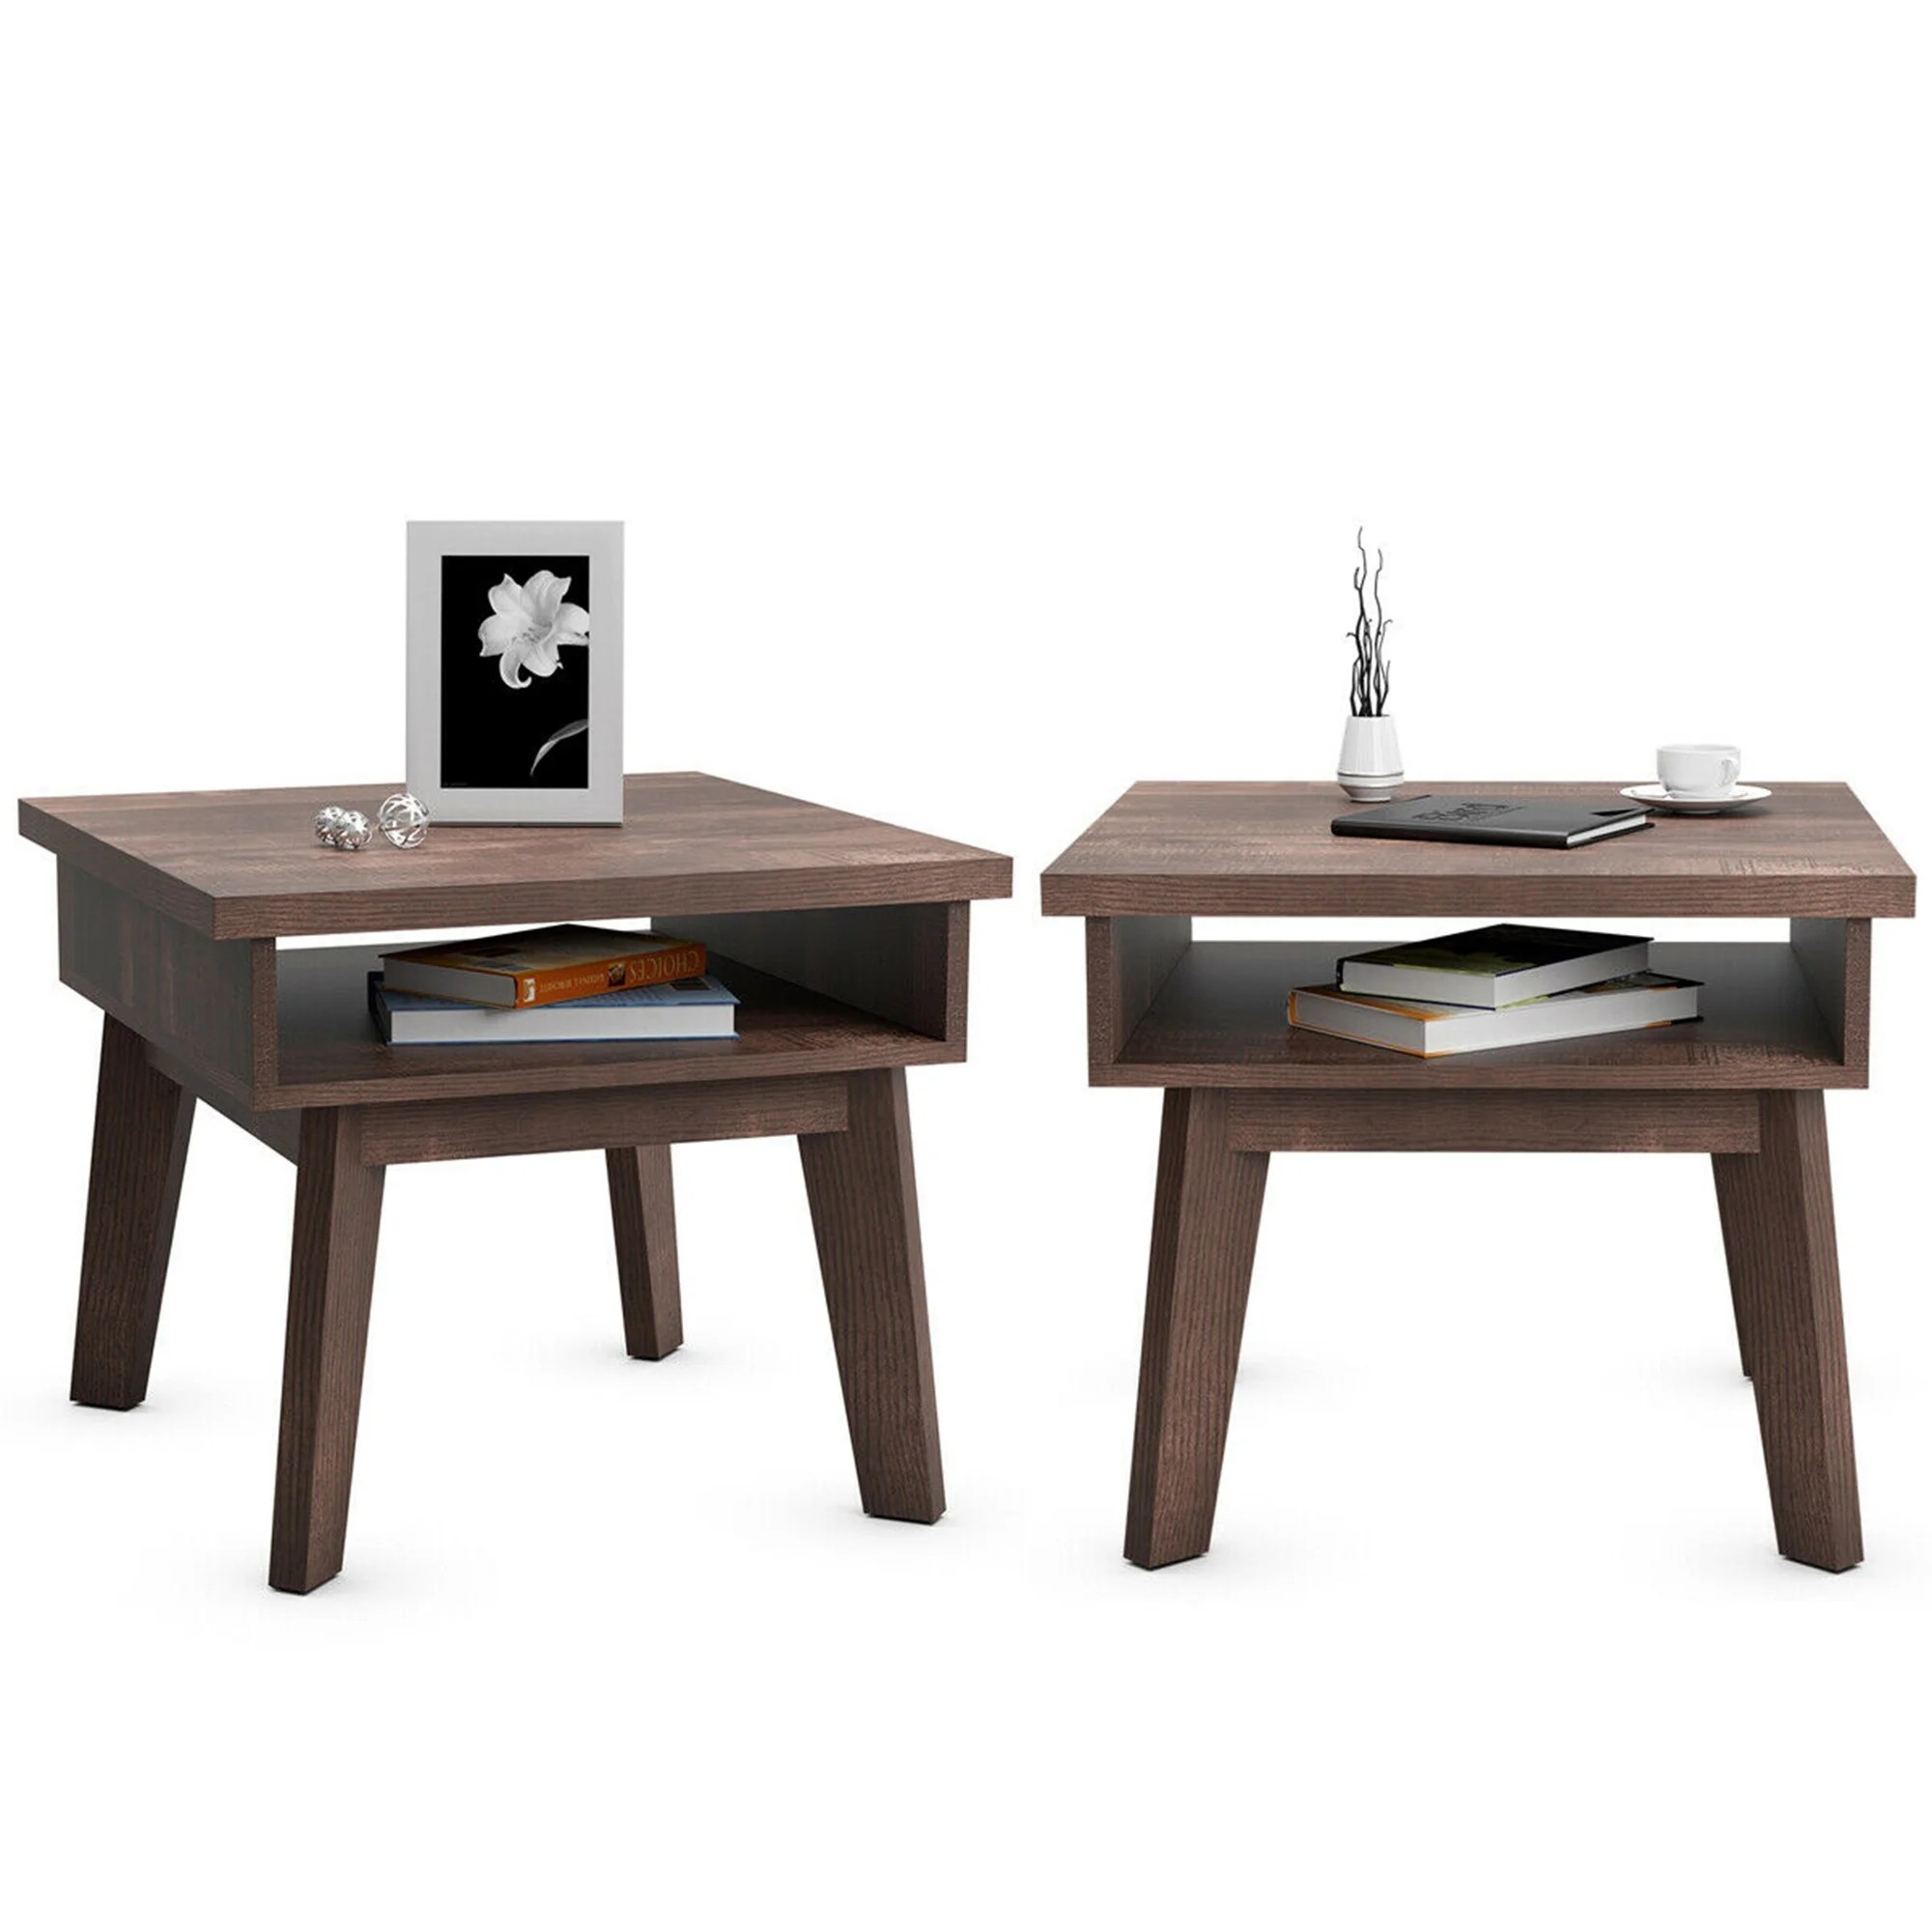 Shop Gymax Set Of 2 Nightstand Space Saving Side Sofa End Table W Open See Details On Sale Overstock 31960227